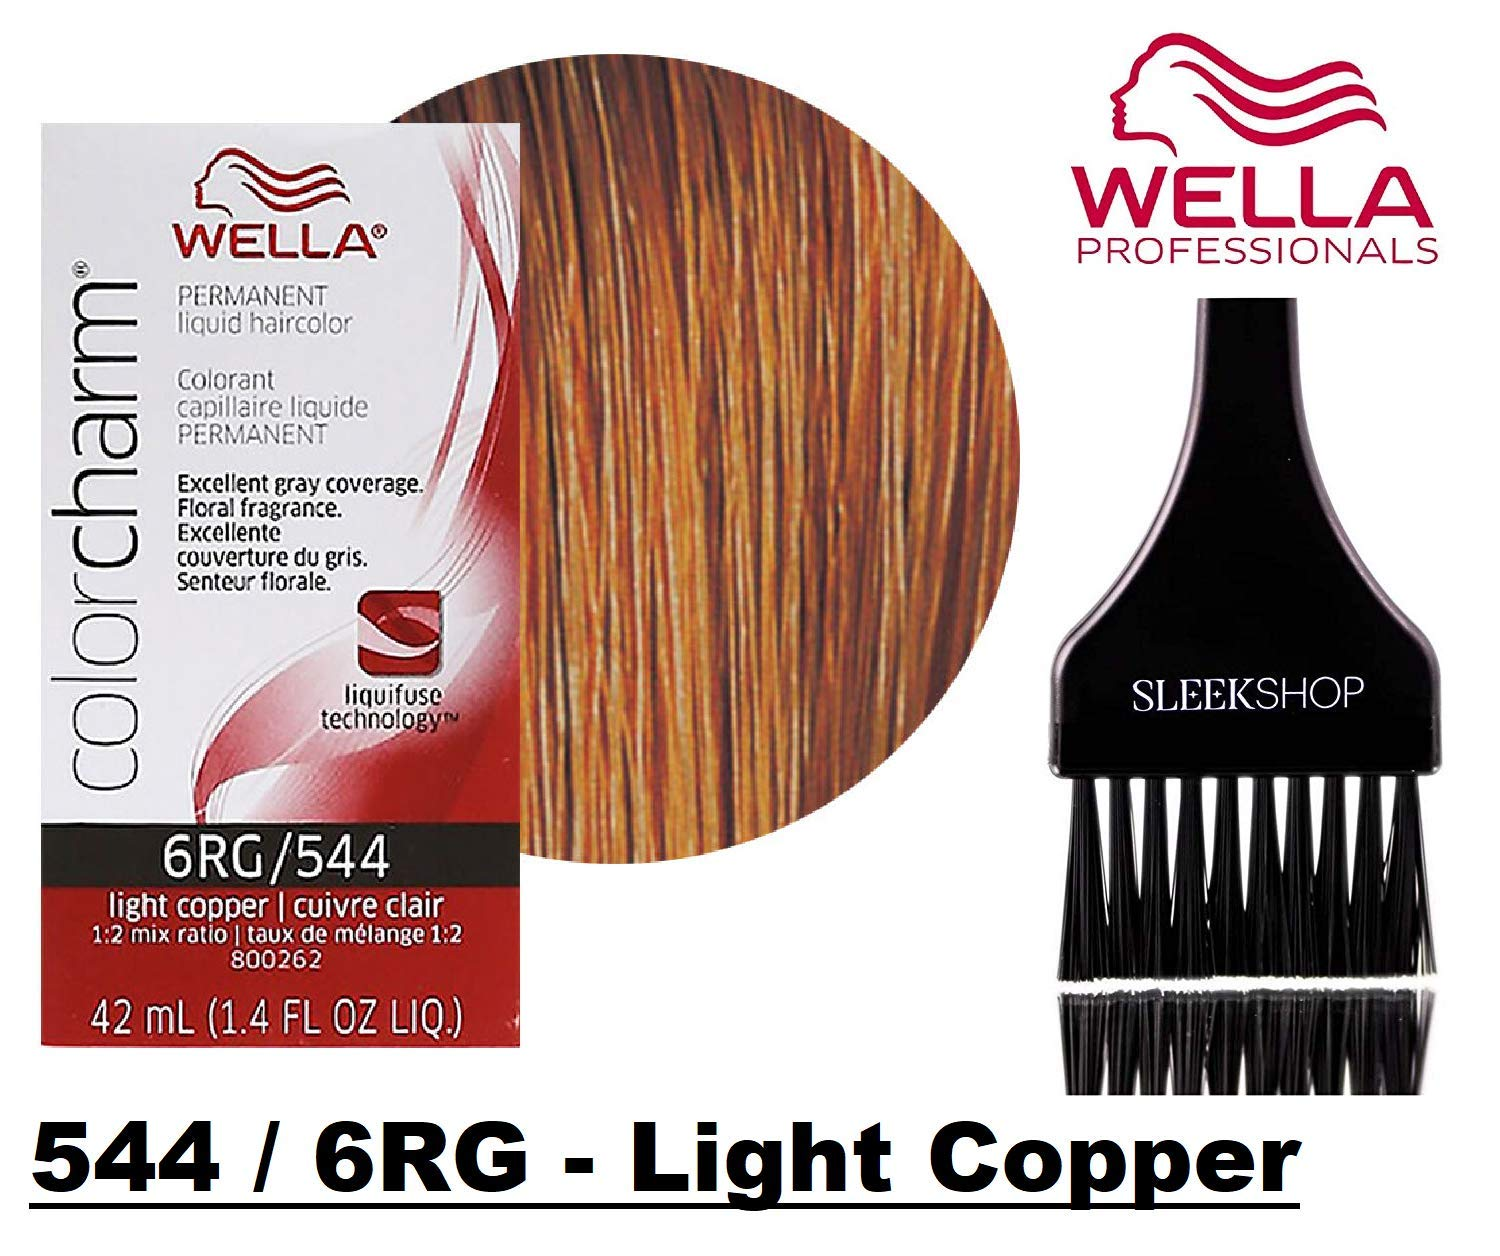 Wella COLOR CHARM PERMANENT Liquid Haircolor (w/Sleek Tint Brush) Excellent  Gray Coverage,...